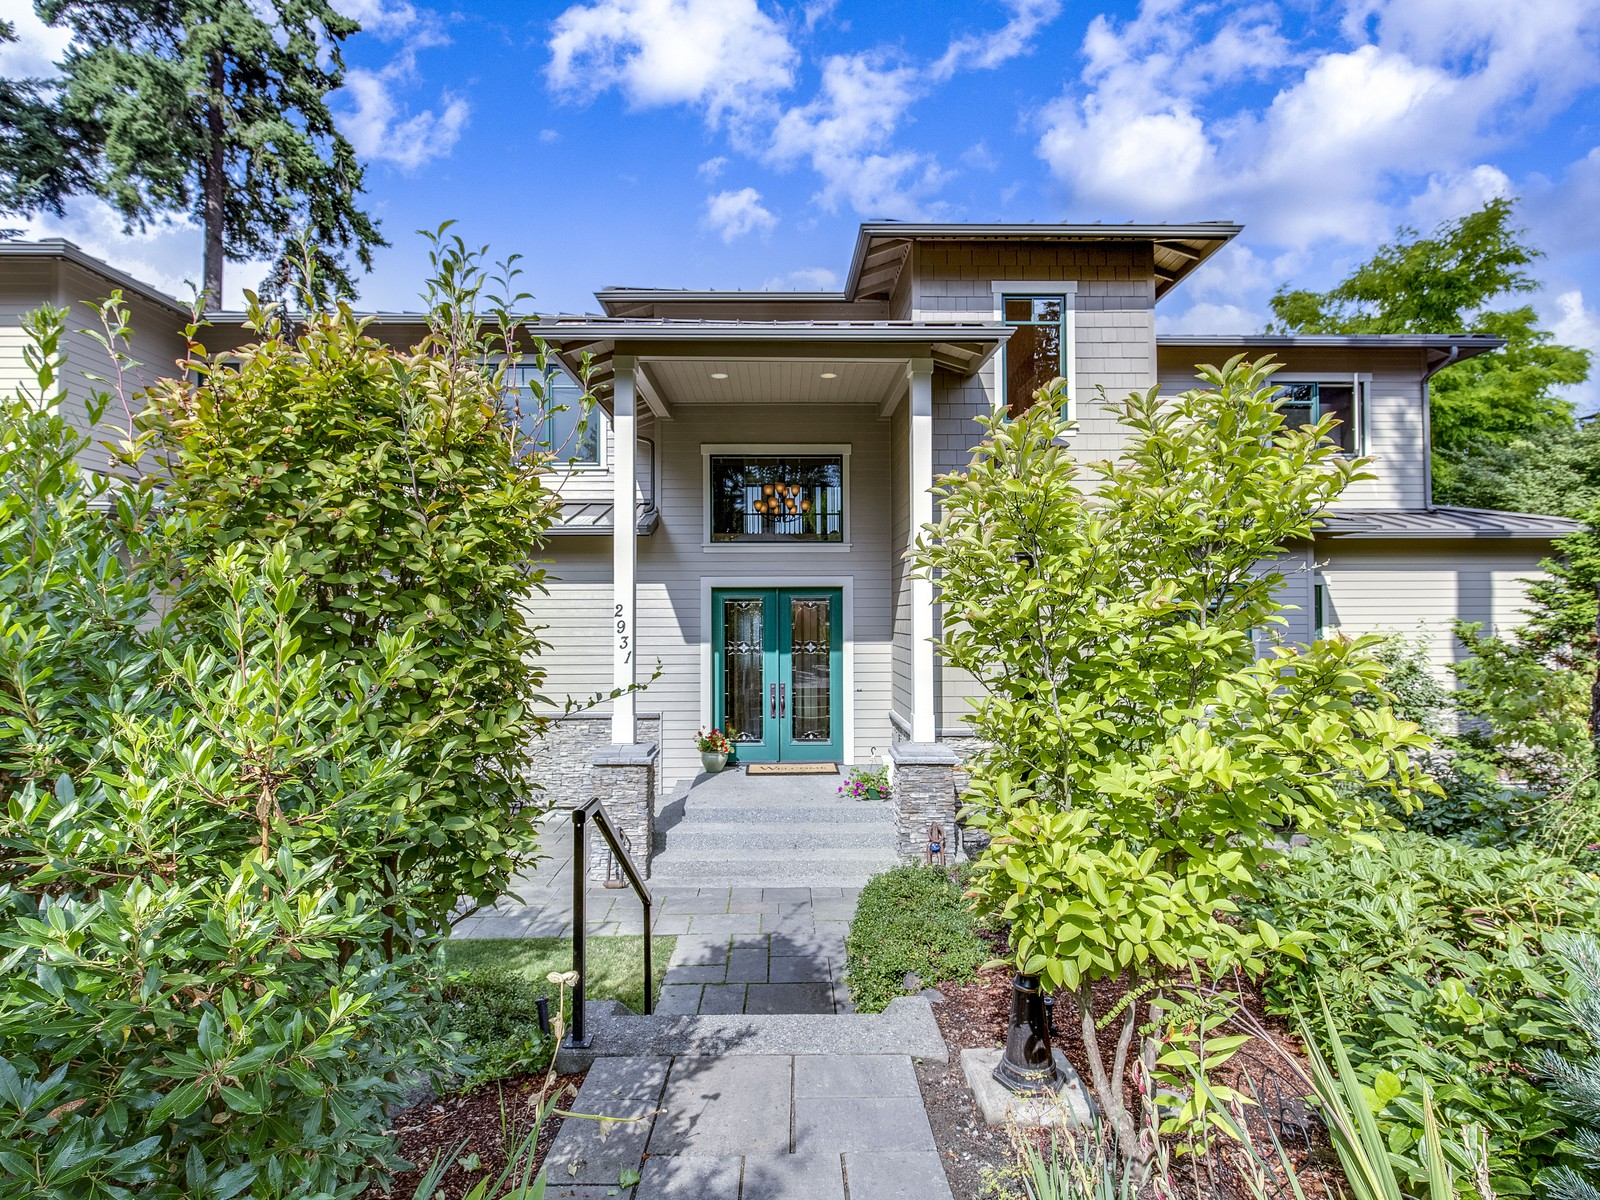 Single Family Home for Sale at Stunning NW Contemporary 2931 71st Ave SE Mercer Island, Washington 98040 United States